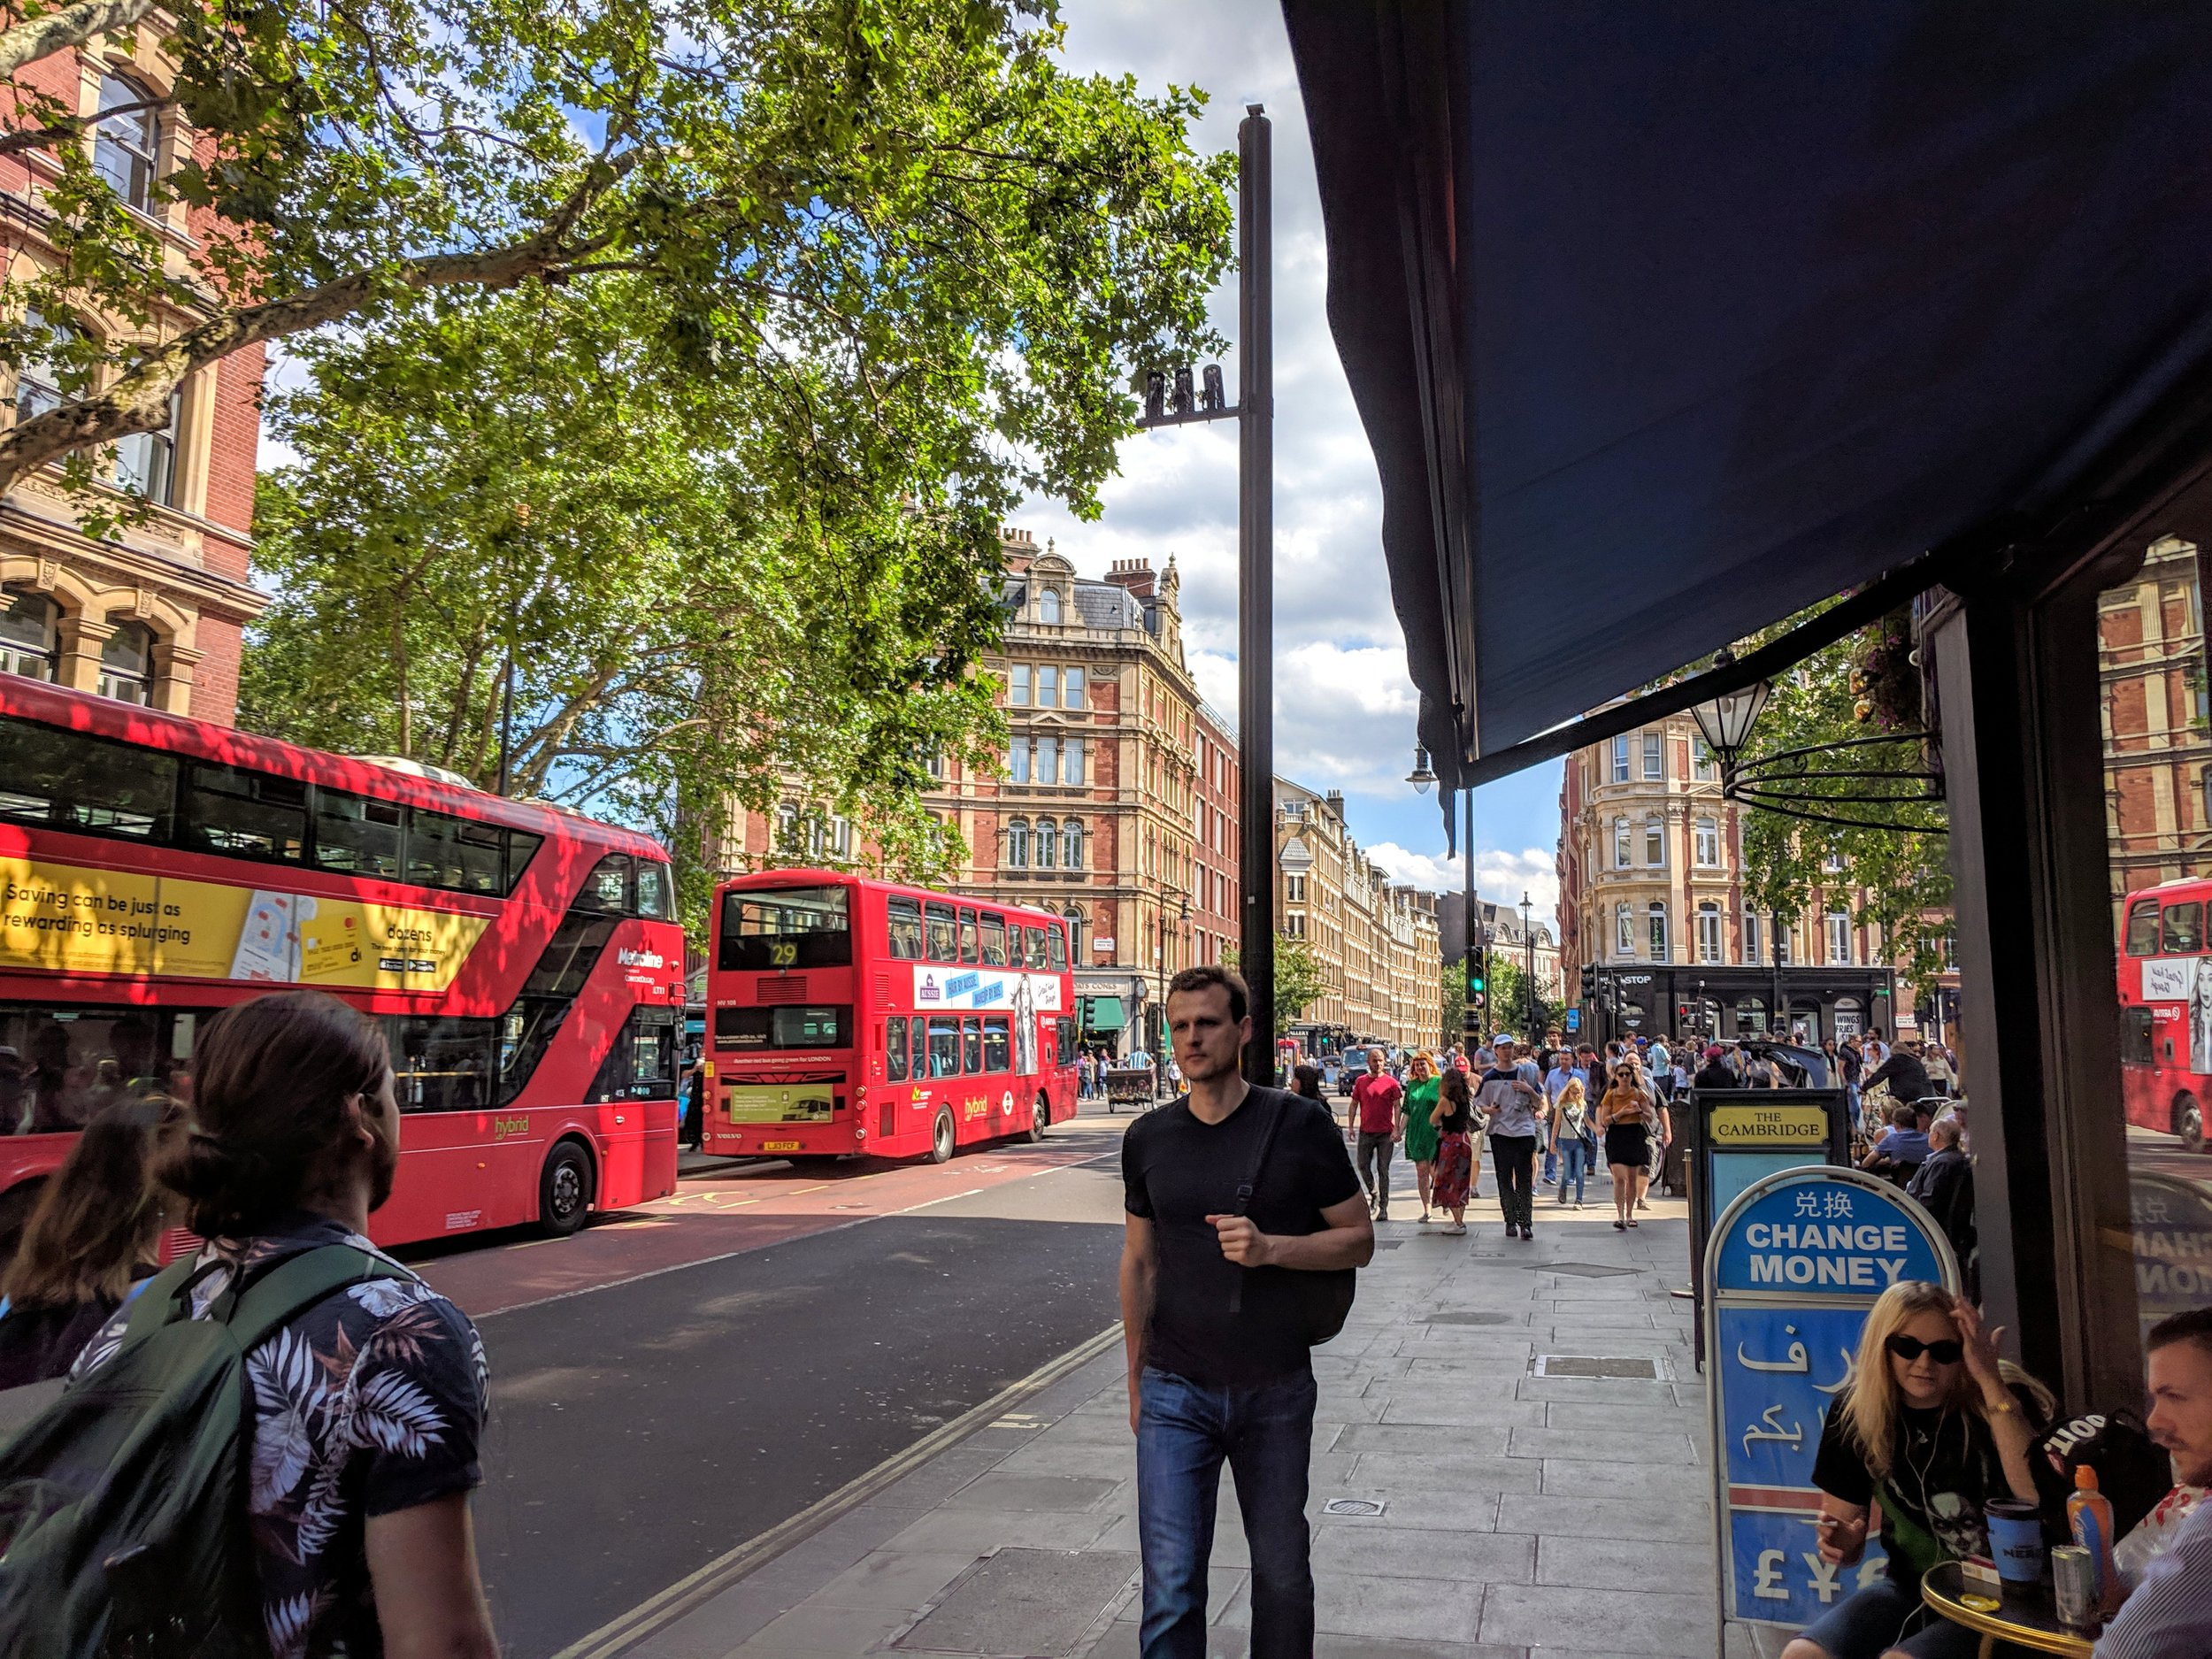 London Jun 2019: Leicester Square